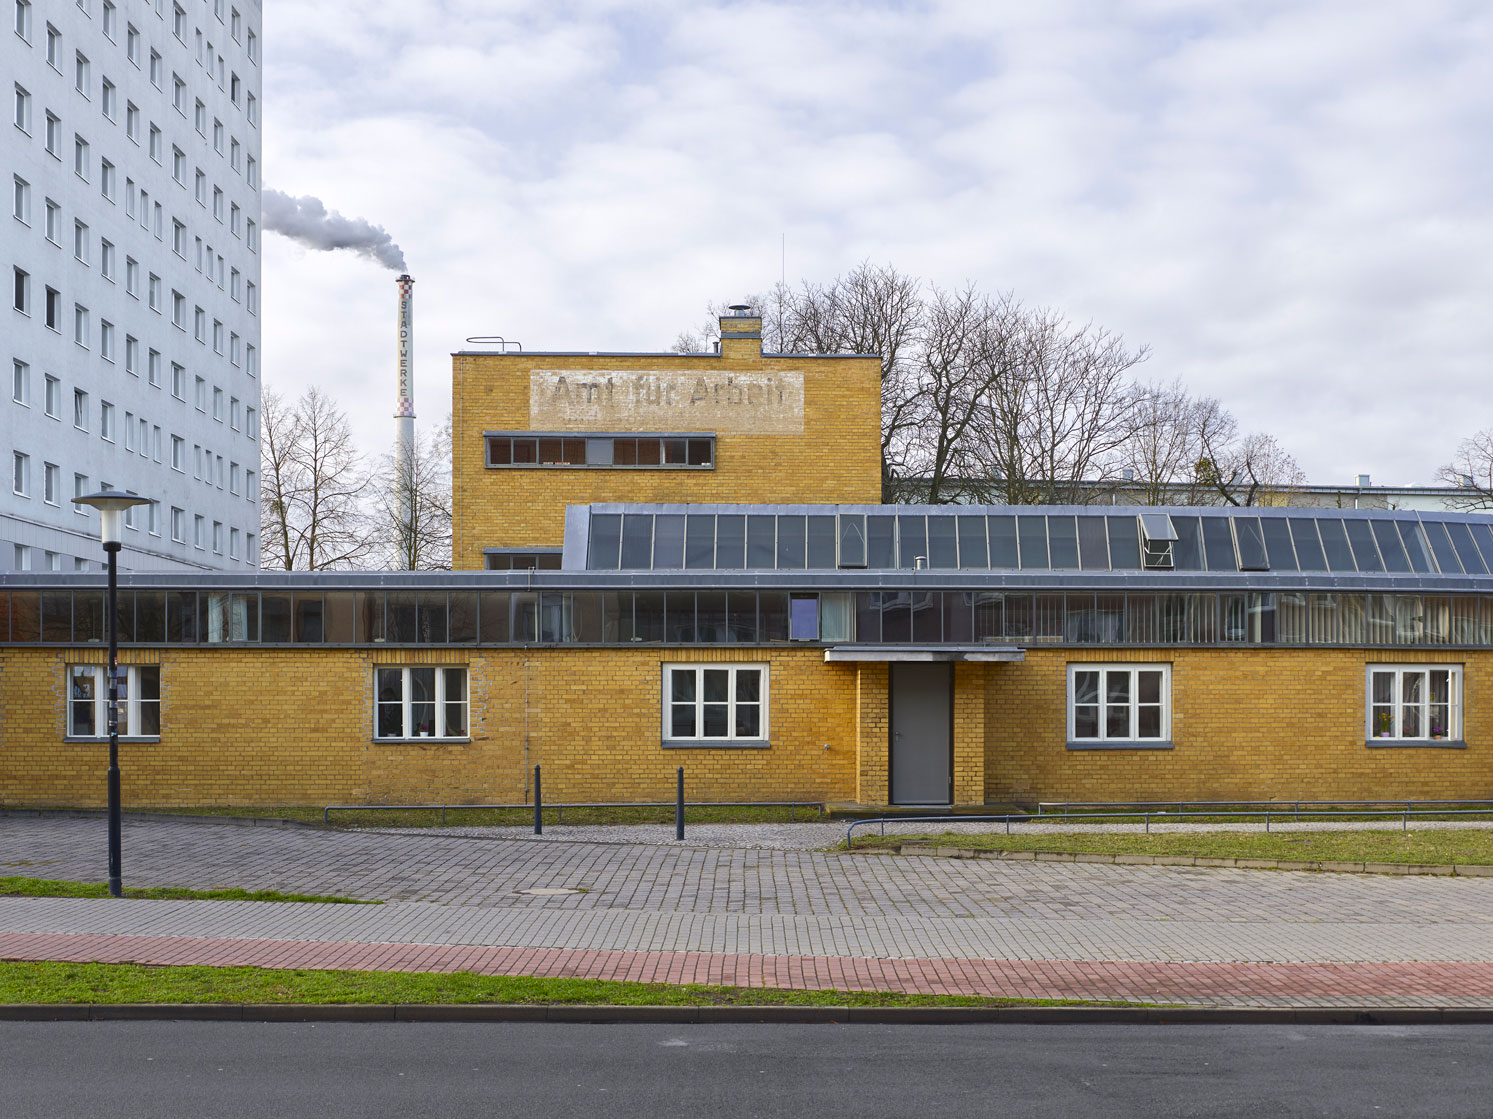 Dessau Employment Office building - Walter Gropius, 1929 - Dessau, Germany